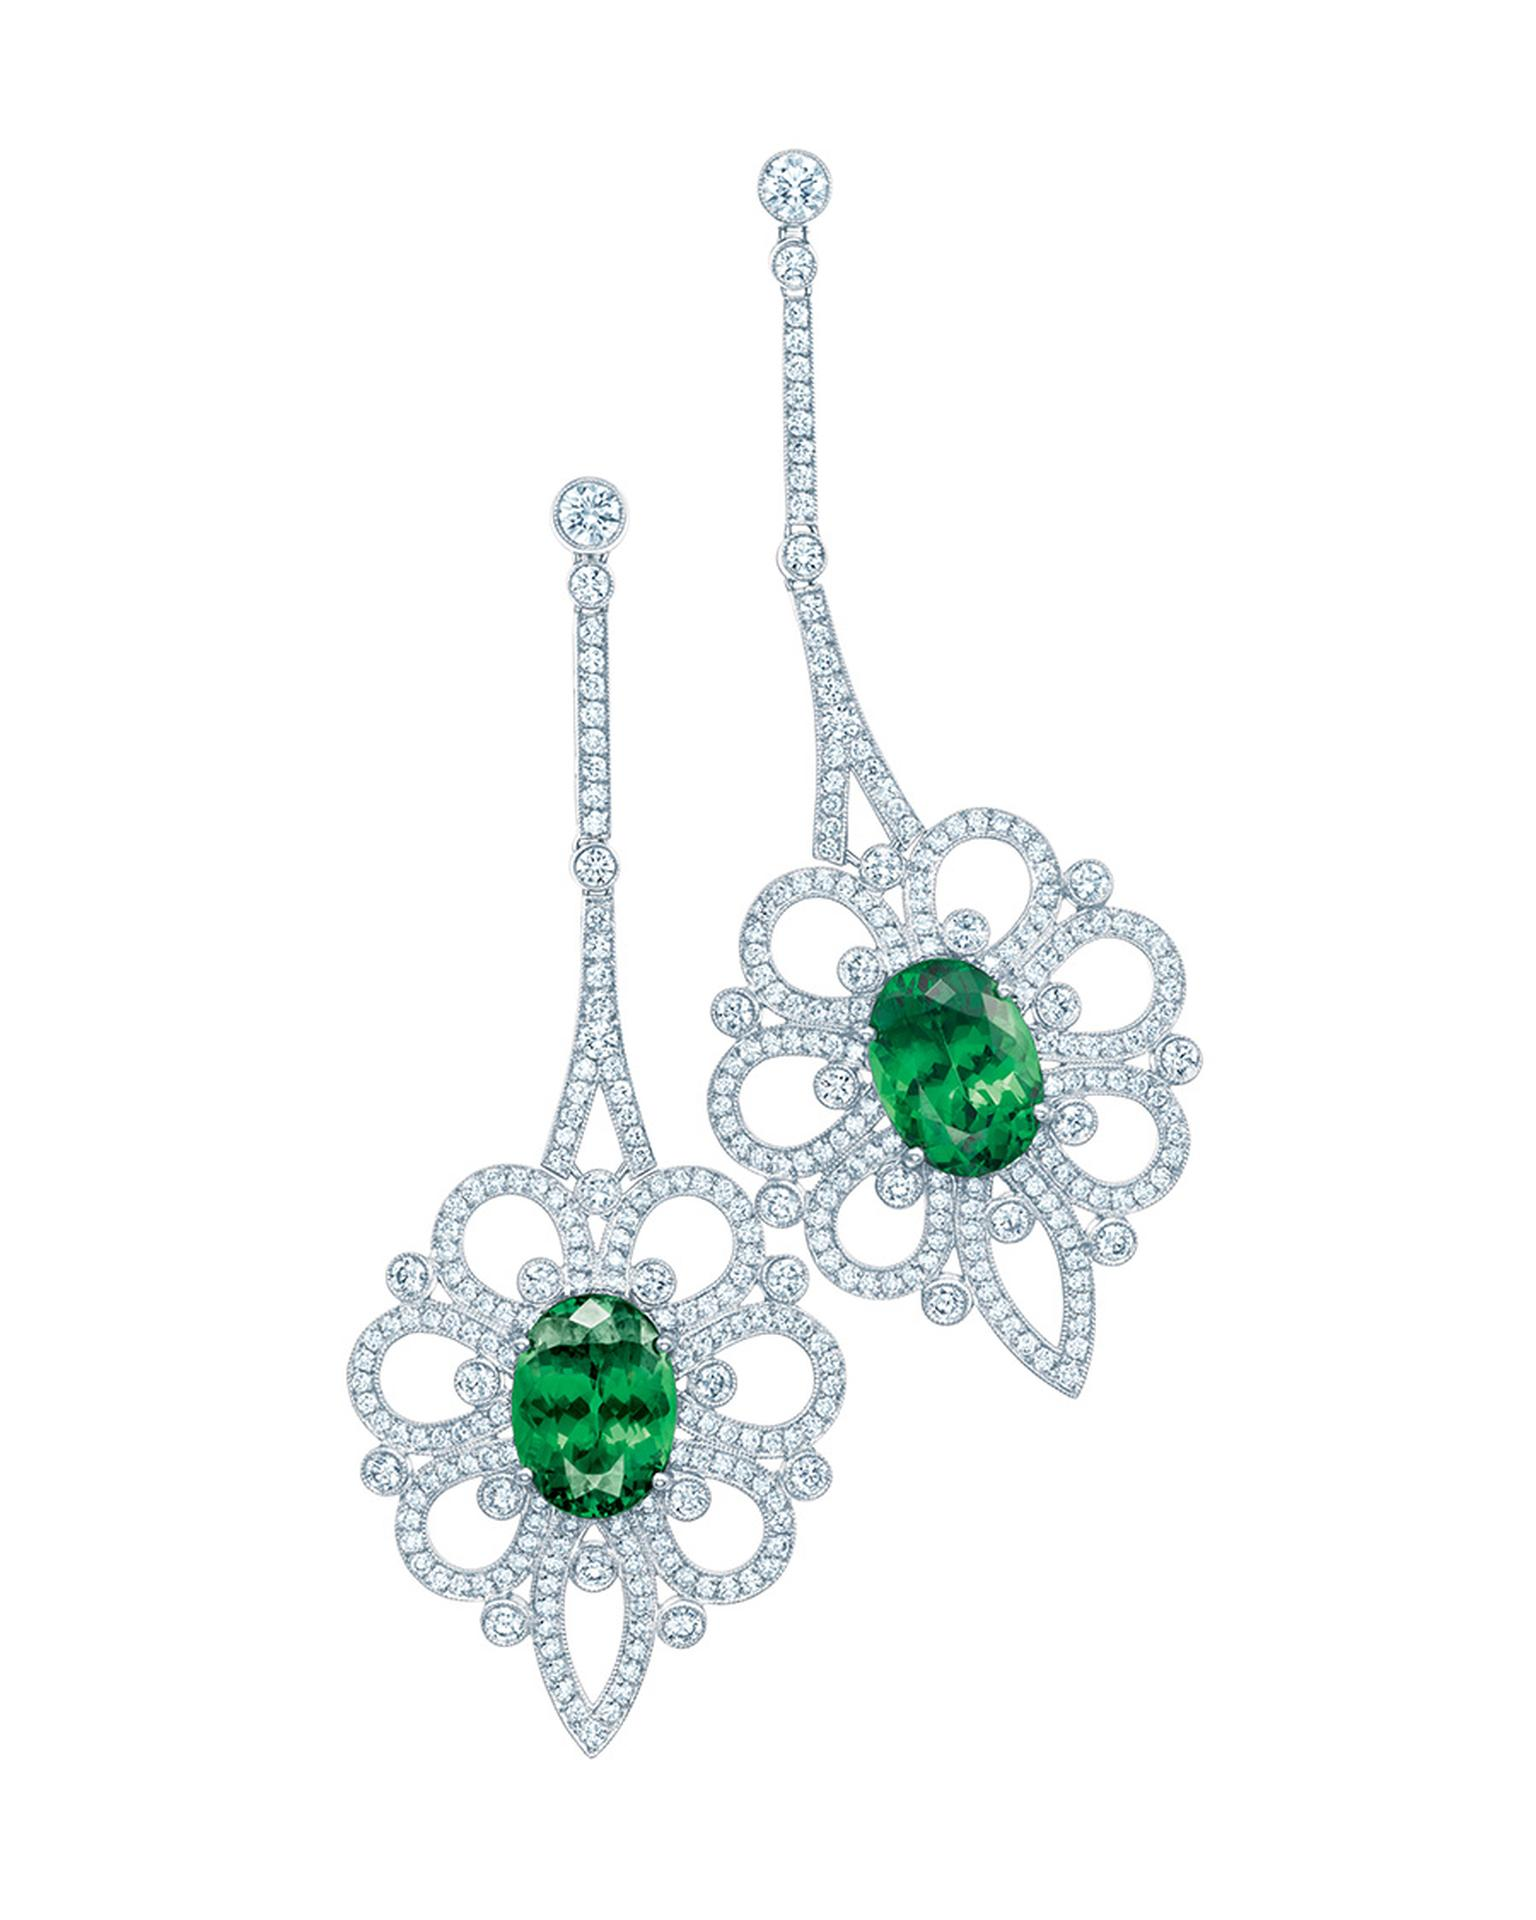 Tiffany tsavorite and diamond earrings in platinum, from the Legacy collection.